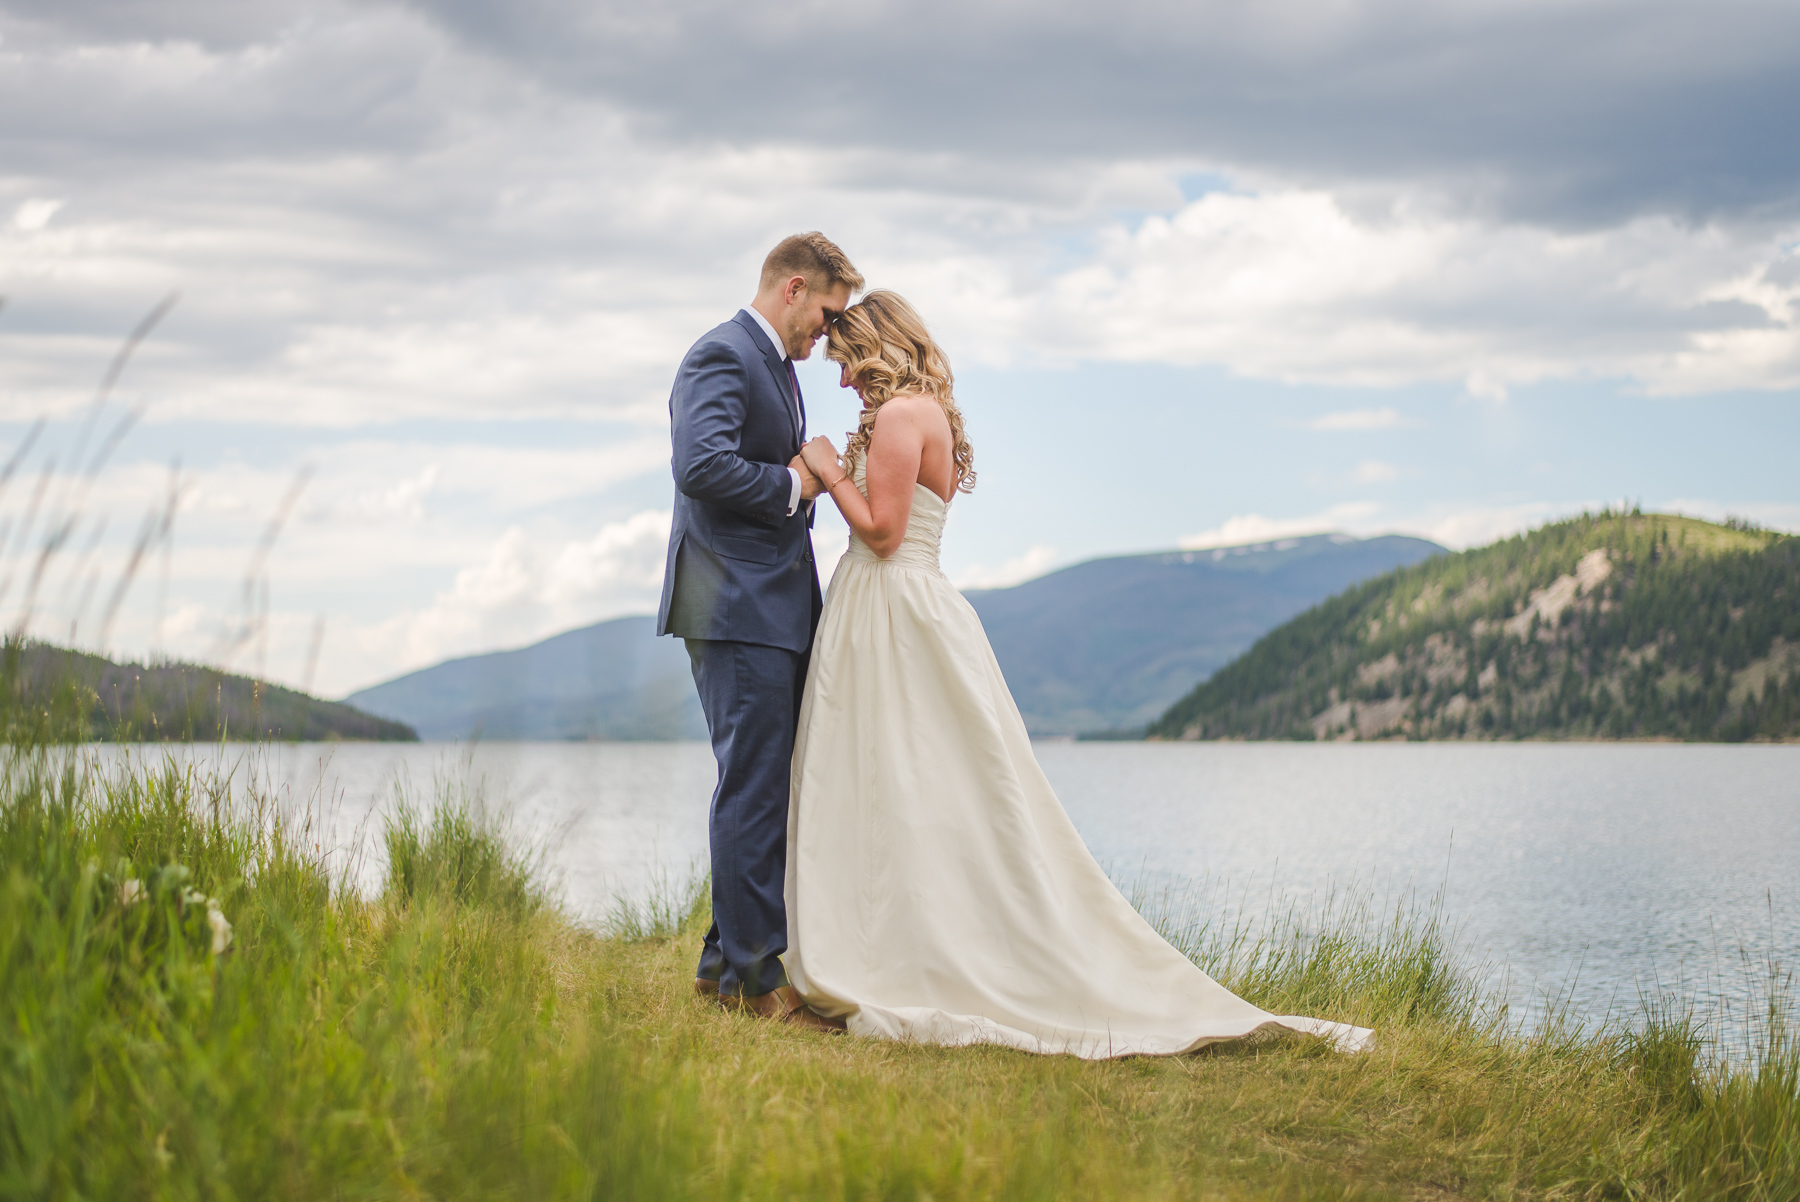 summer elopement by the lake near breckenridge, colorado | keeping composure photography + summit mountain weddings